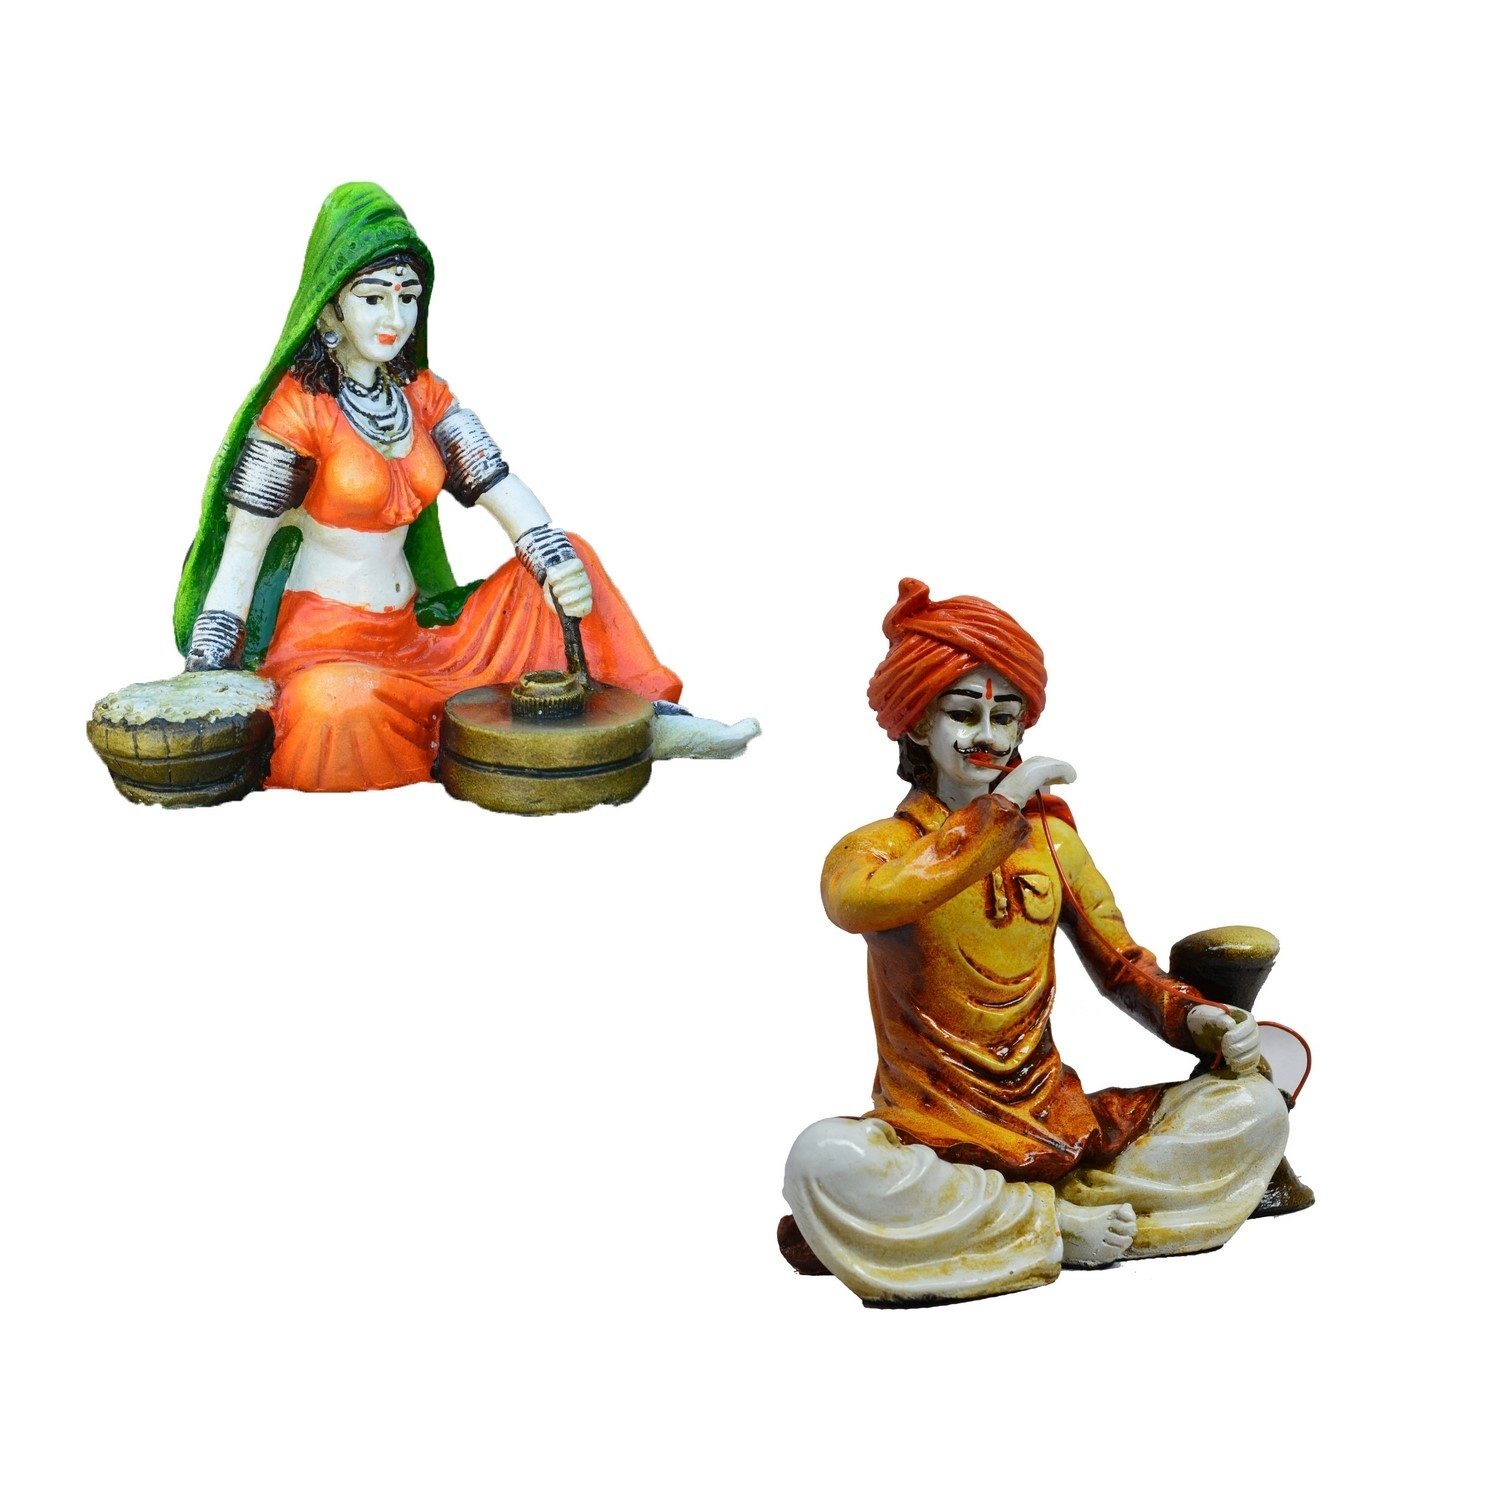 Combo of Rajasthani Hookah Man and Lady Statue Indian Home Decor